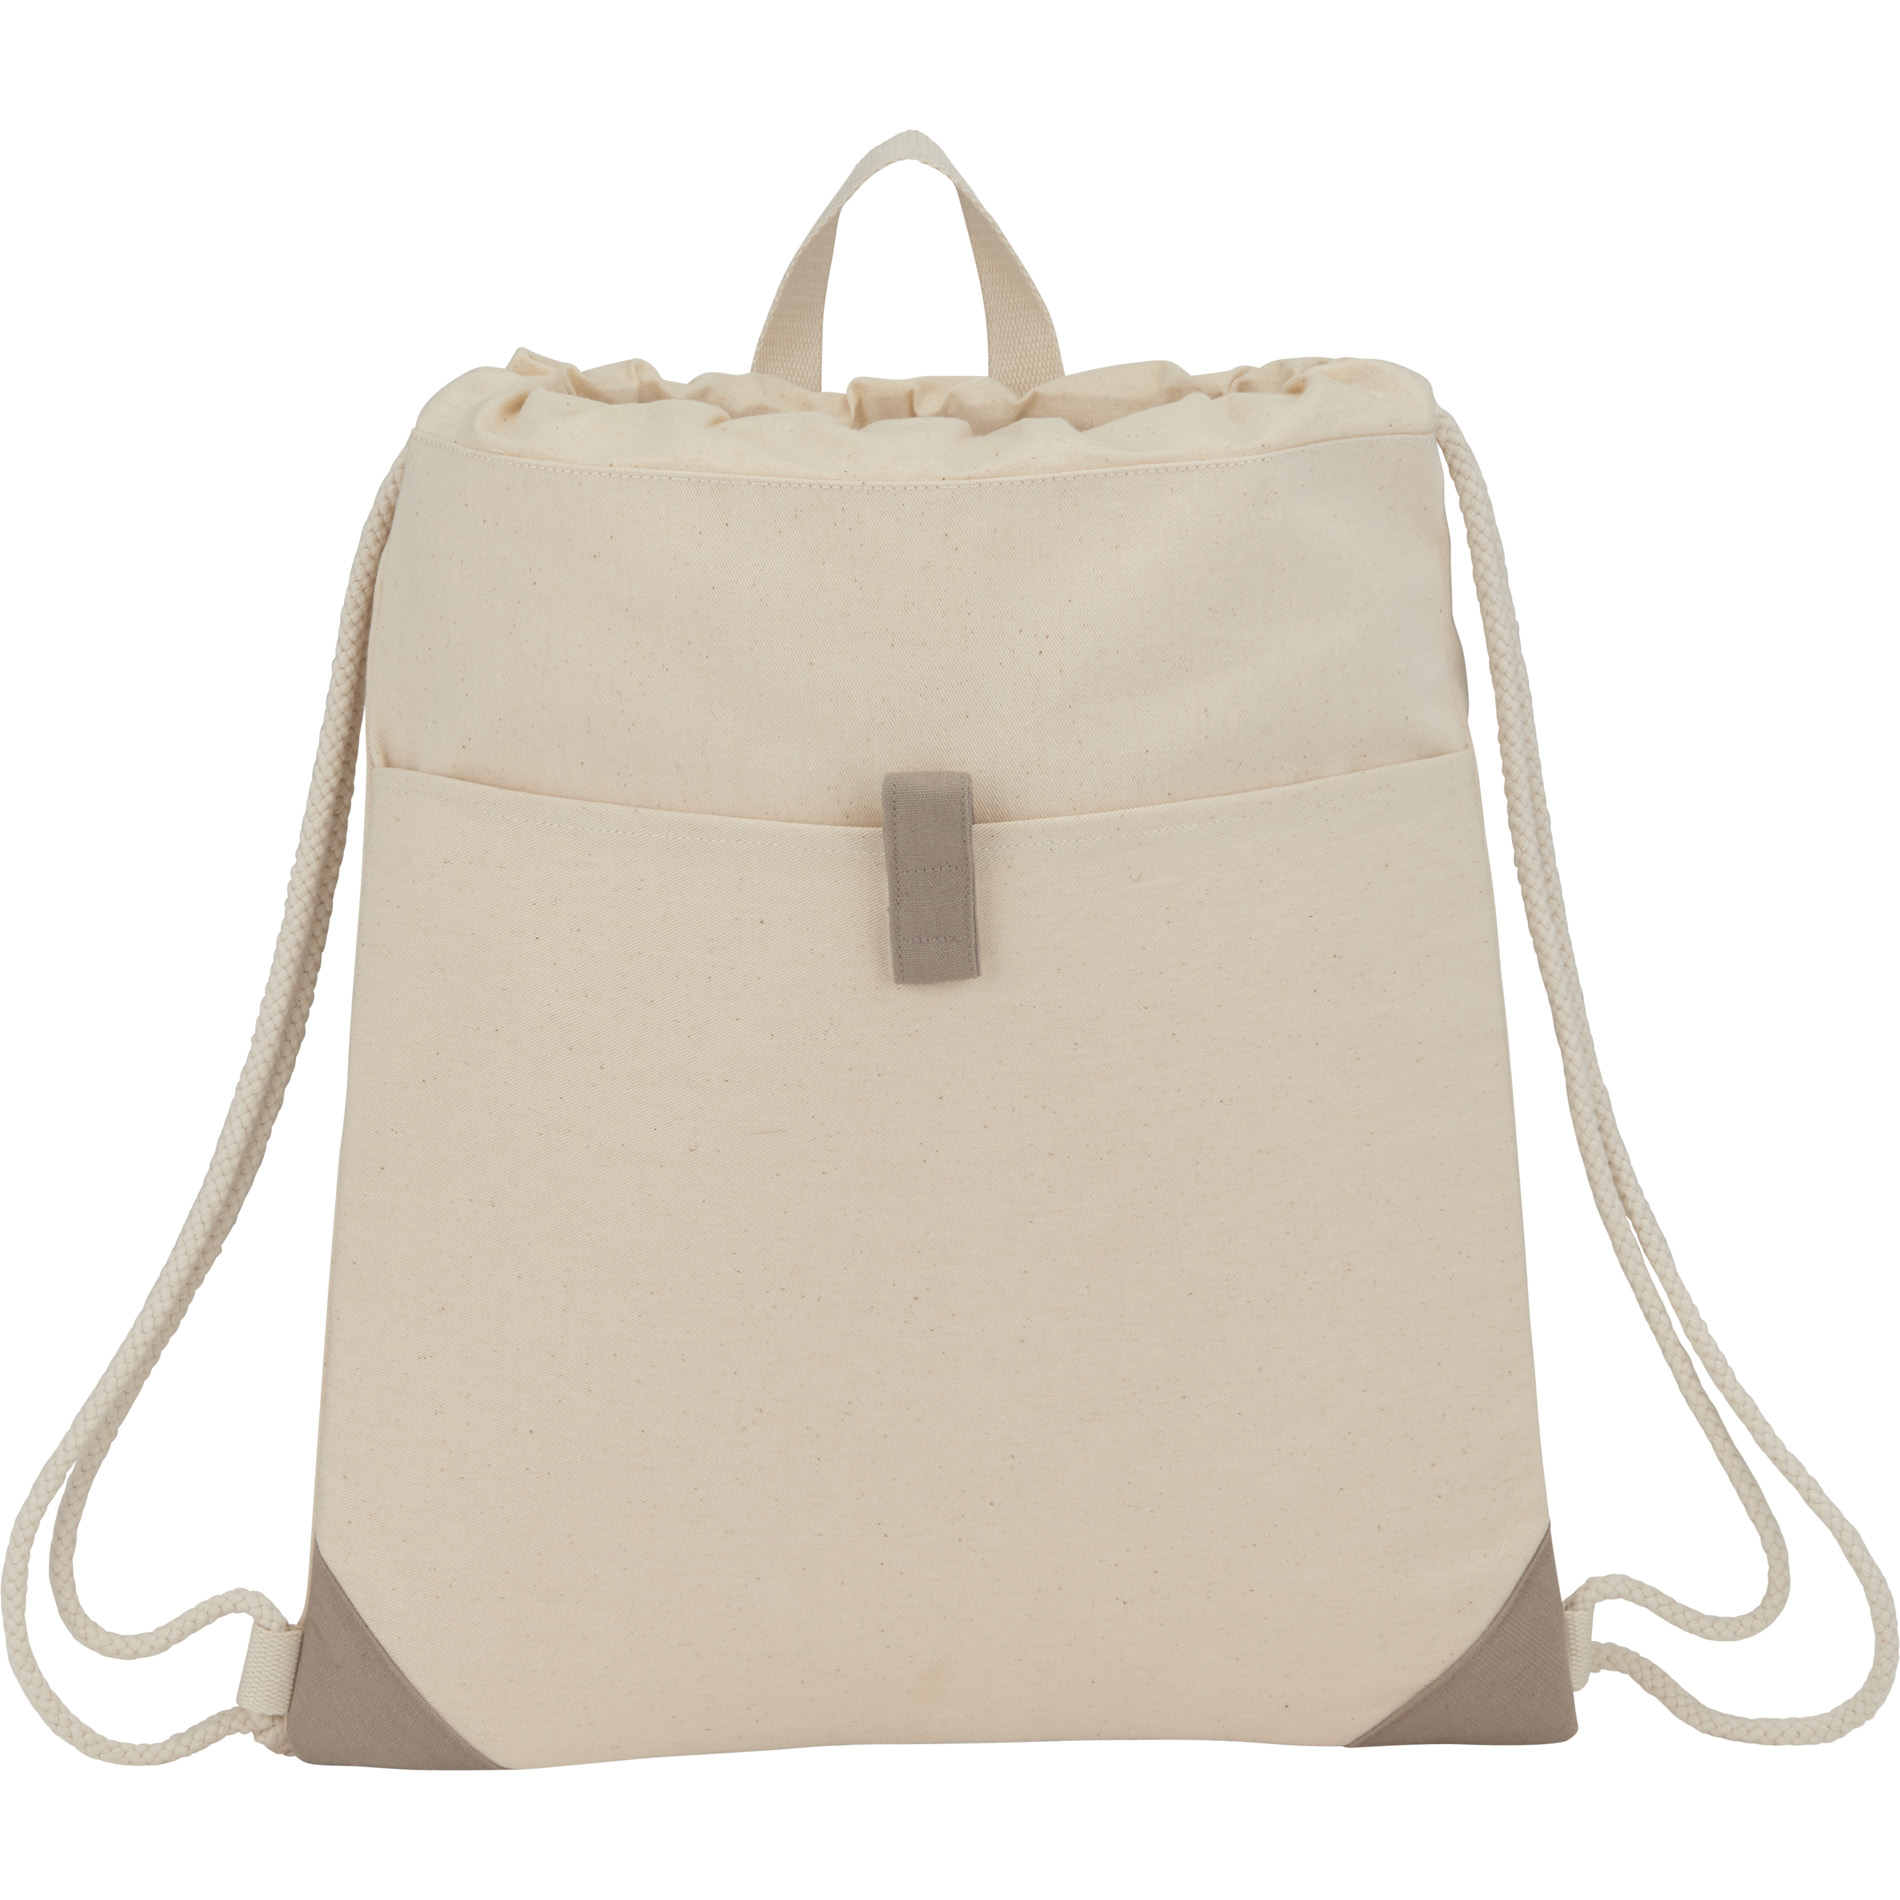 LEEDS 3001-72 - Recycled Cotton Drawstring Bag